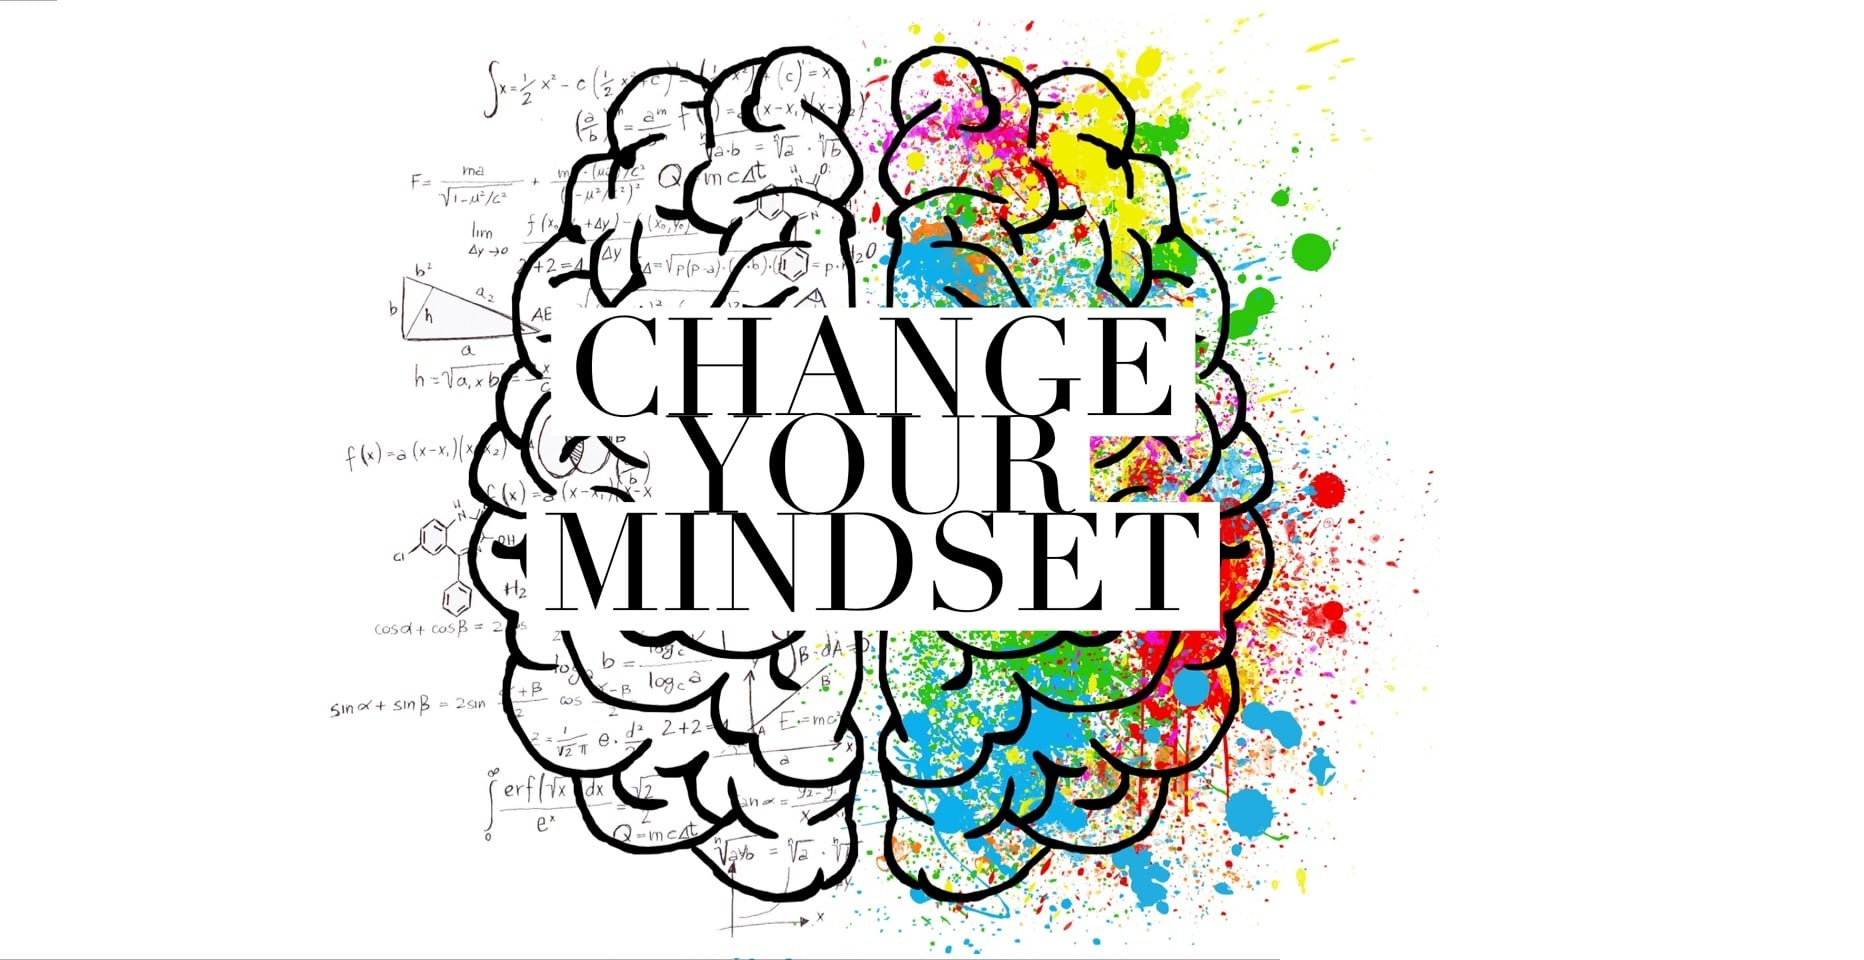 Mindset: how to transform your life